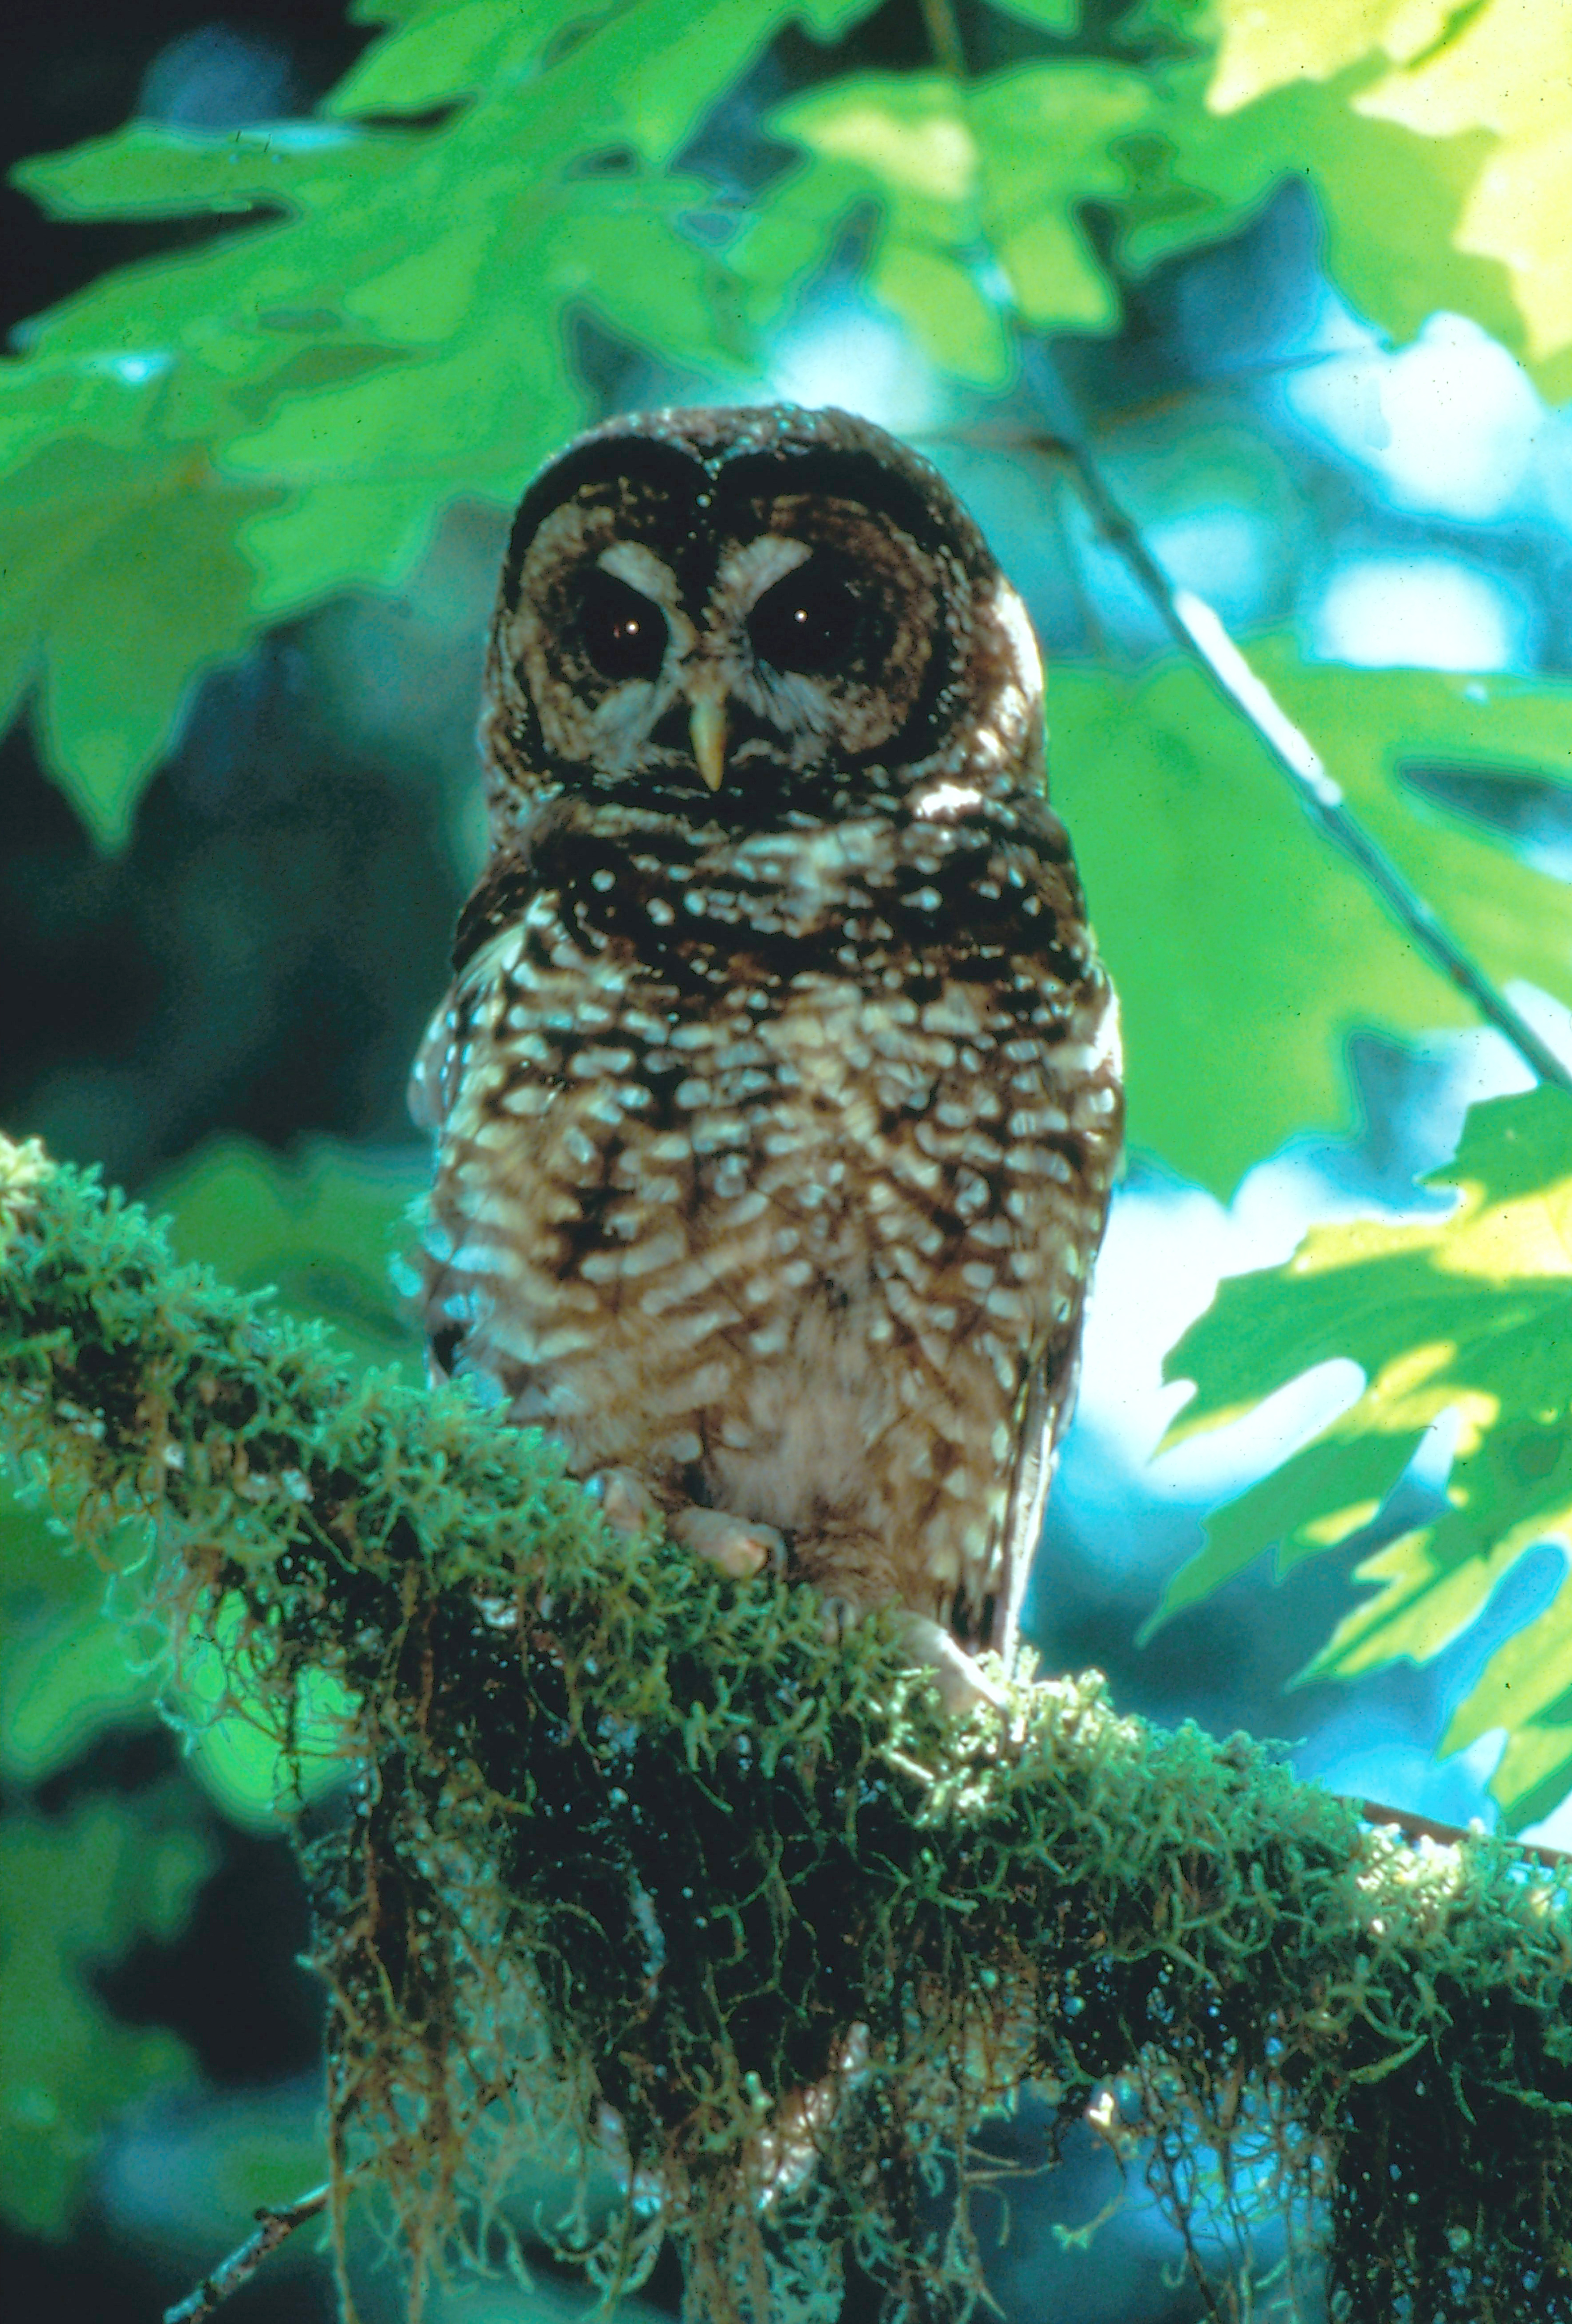 Northern spotted owl sitting on branch